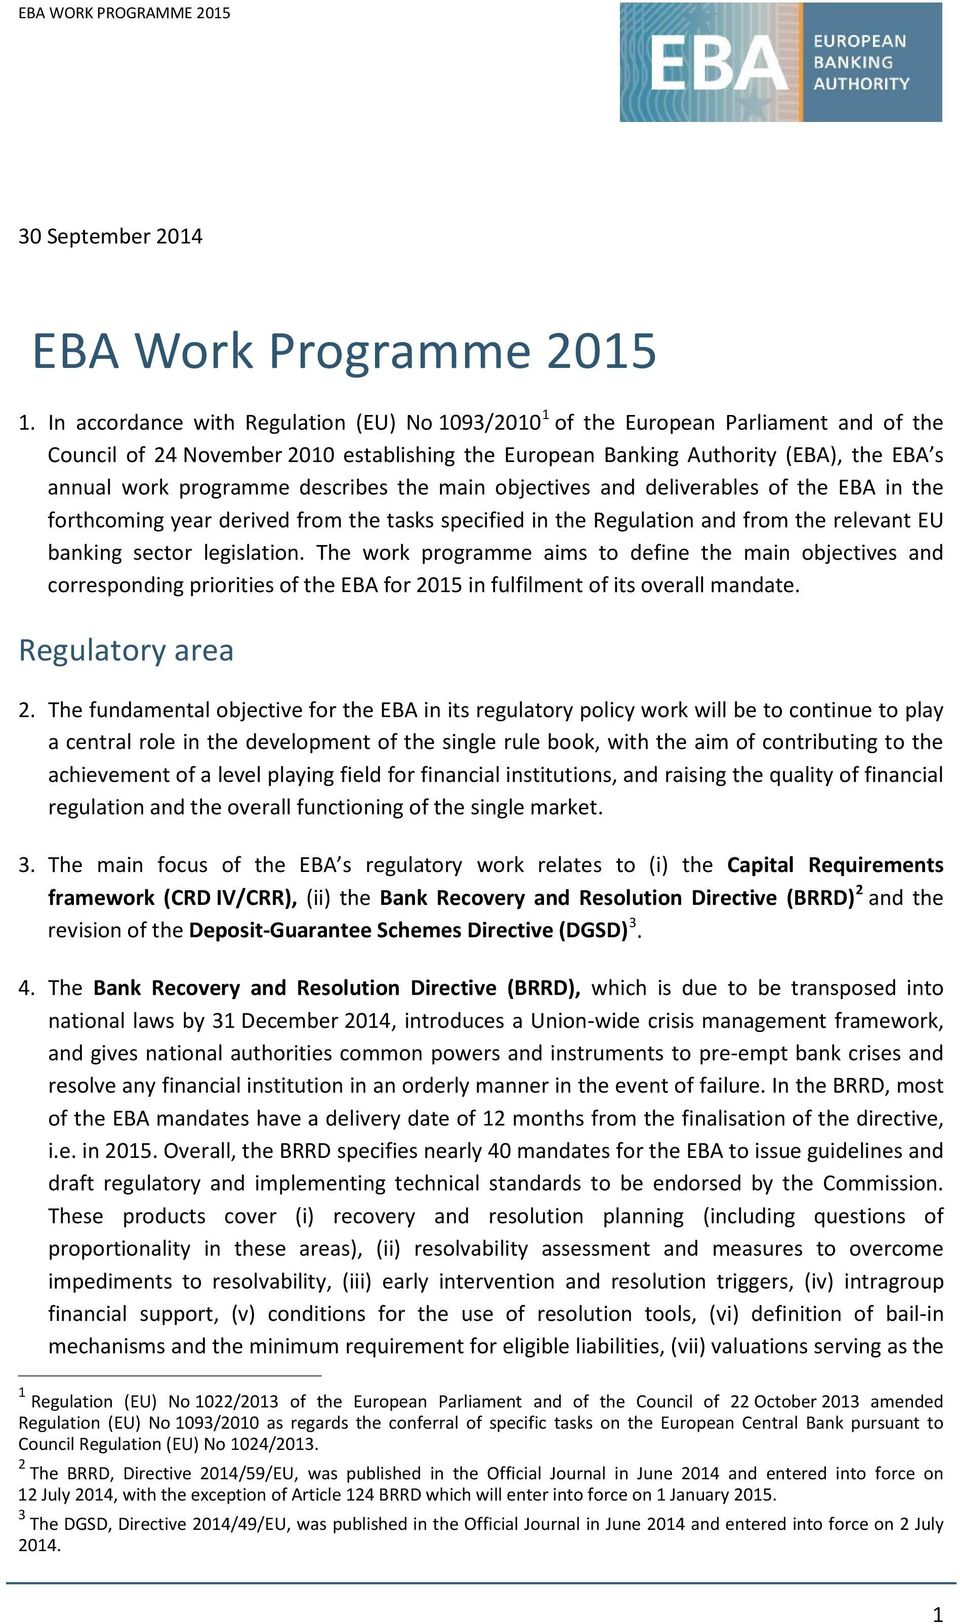 describes the main objectives and deliverables of the EBA in the forthcoming year derived from the tasks specified in the Regulation and from the relevant EU banking sector legislation.